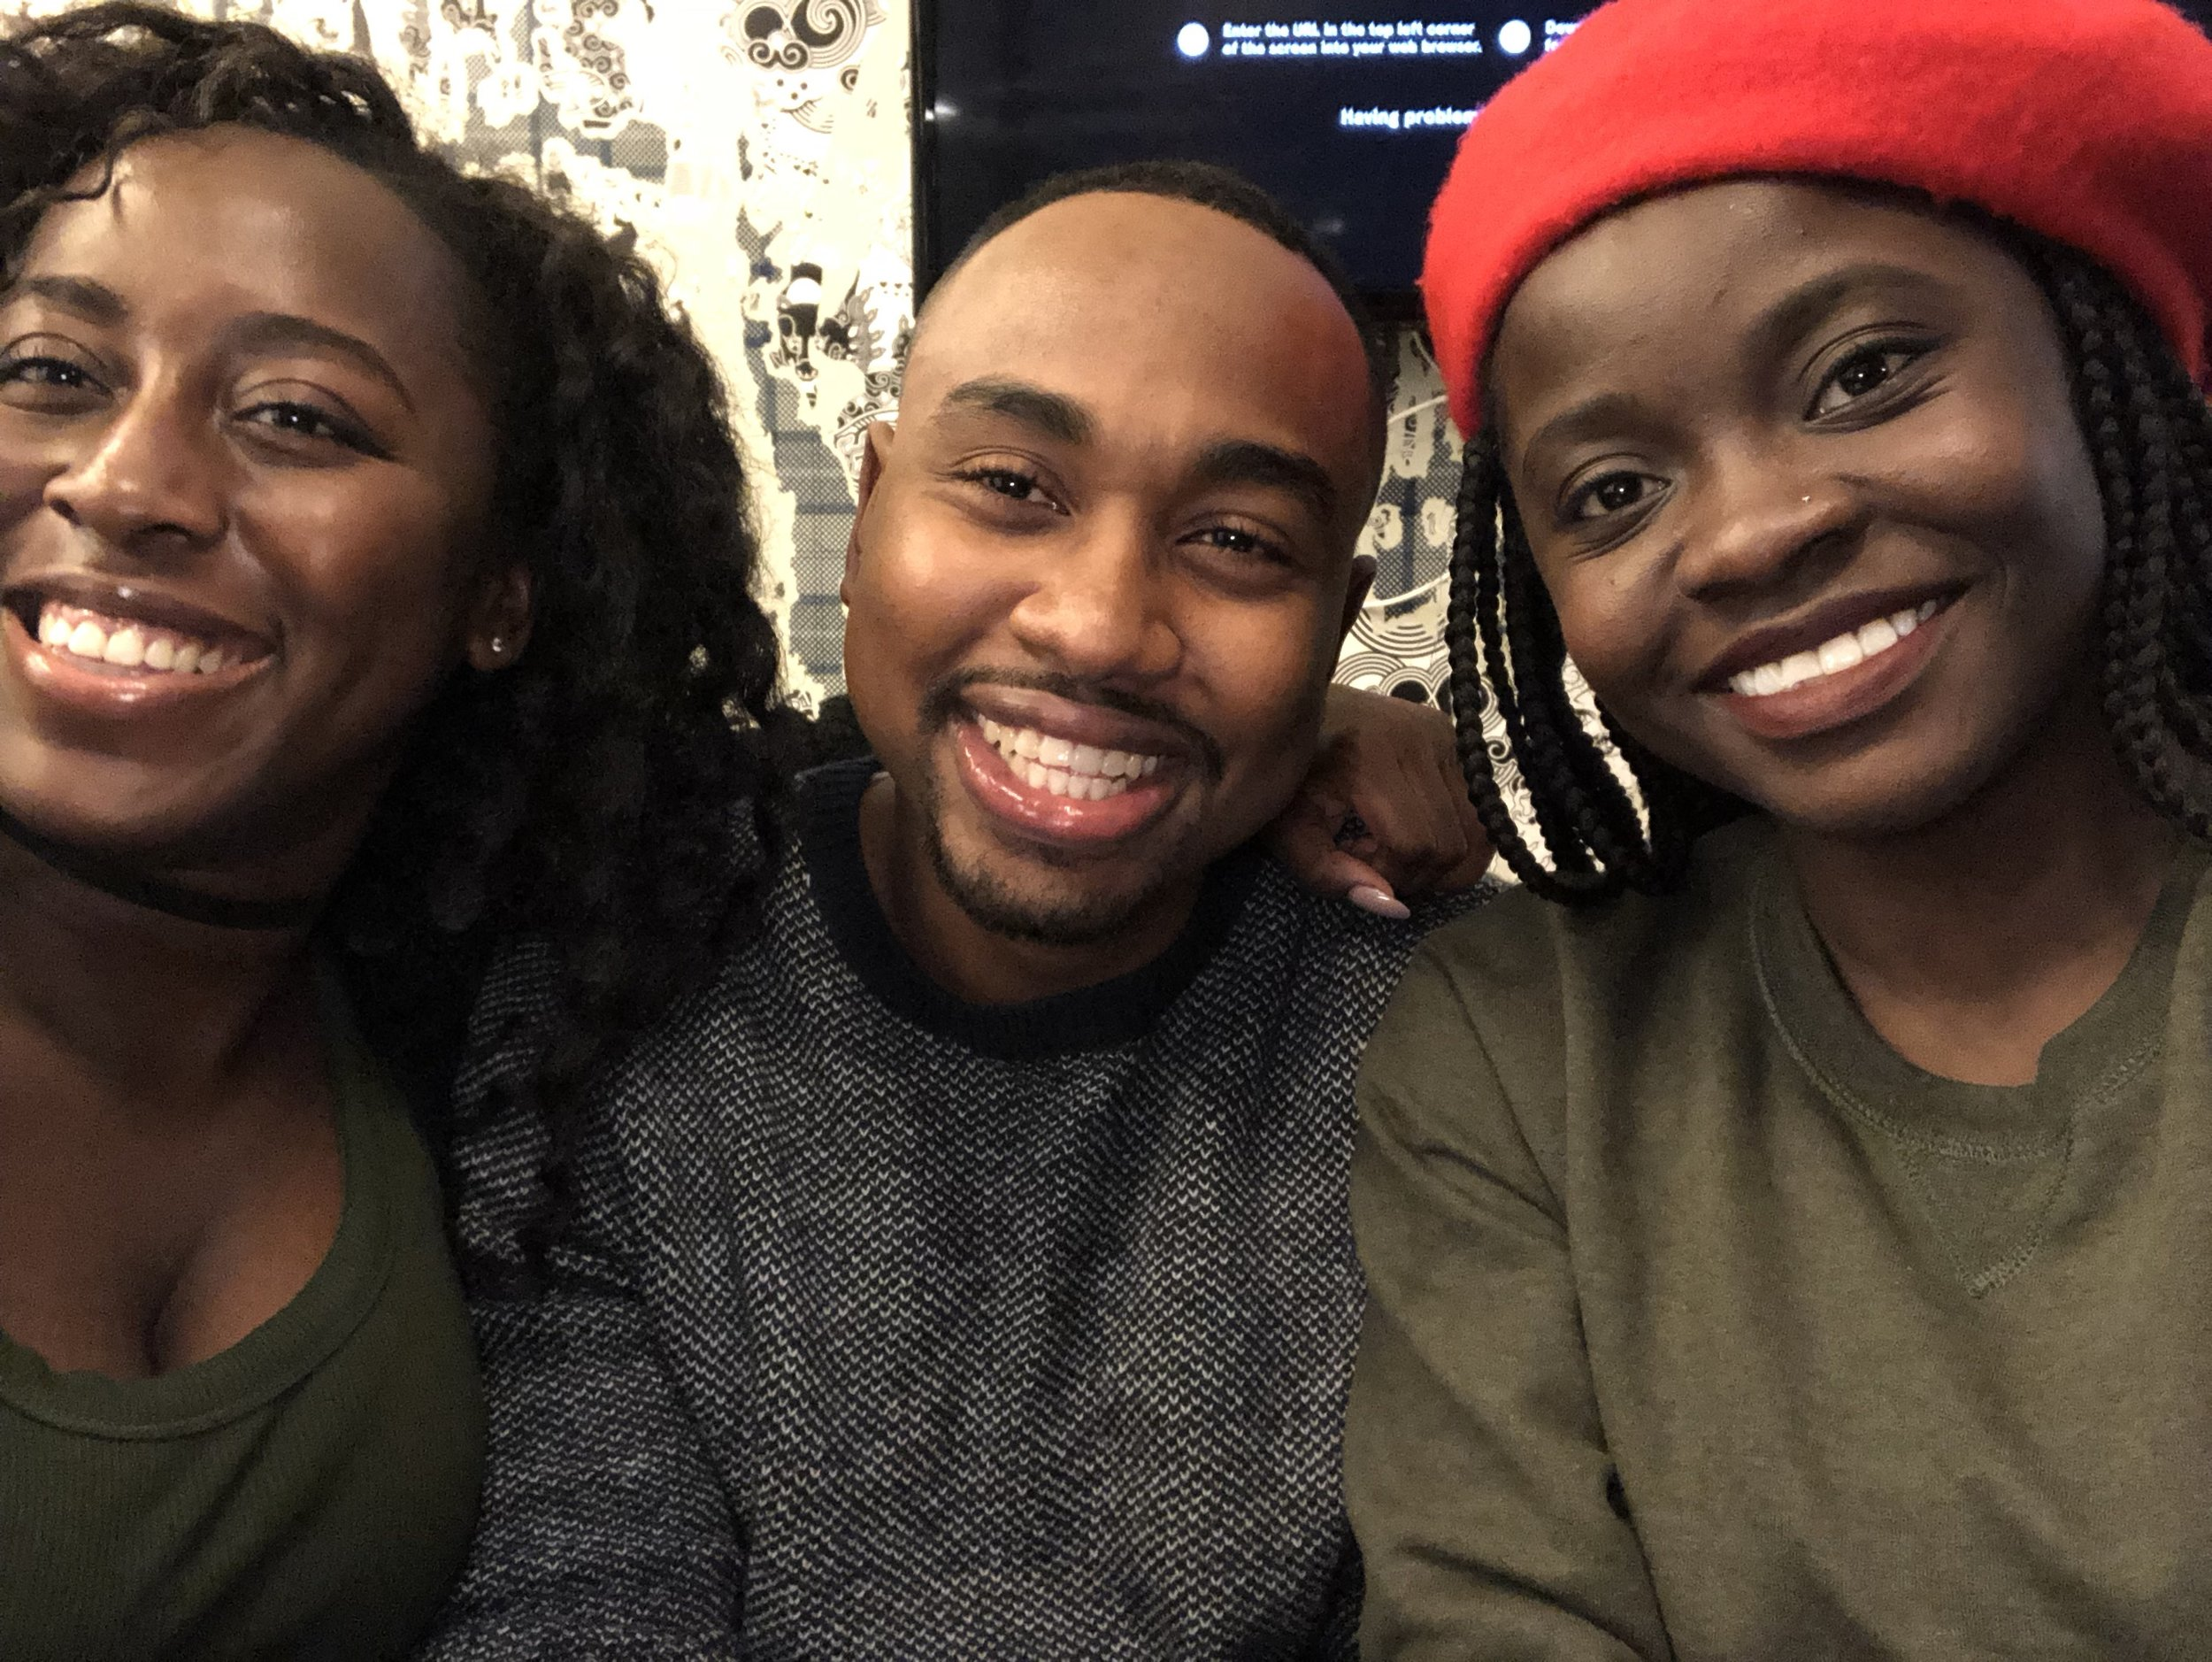 The Millennial Perspective: November, 2017 - Brittany and Marlon sit down with Fatimat Adelabu to share their thoughts on the month recently passed. Listen to these millennials discuss their opinions on going Vegan, Bit Coin, the Libyan Slave Trade and so much more!